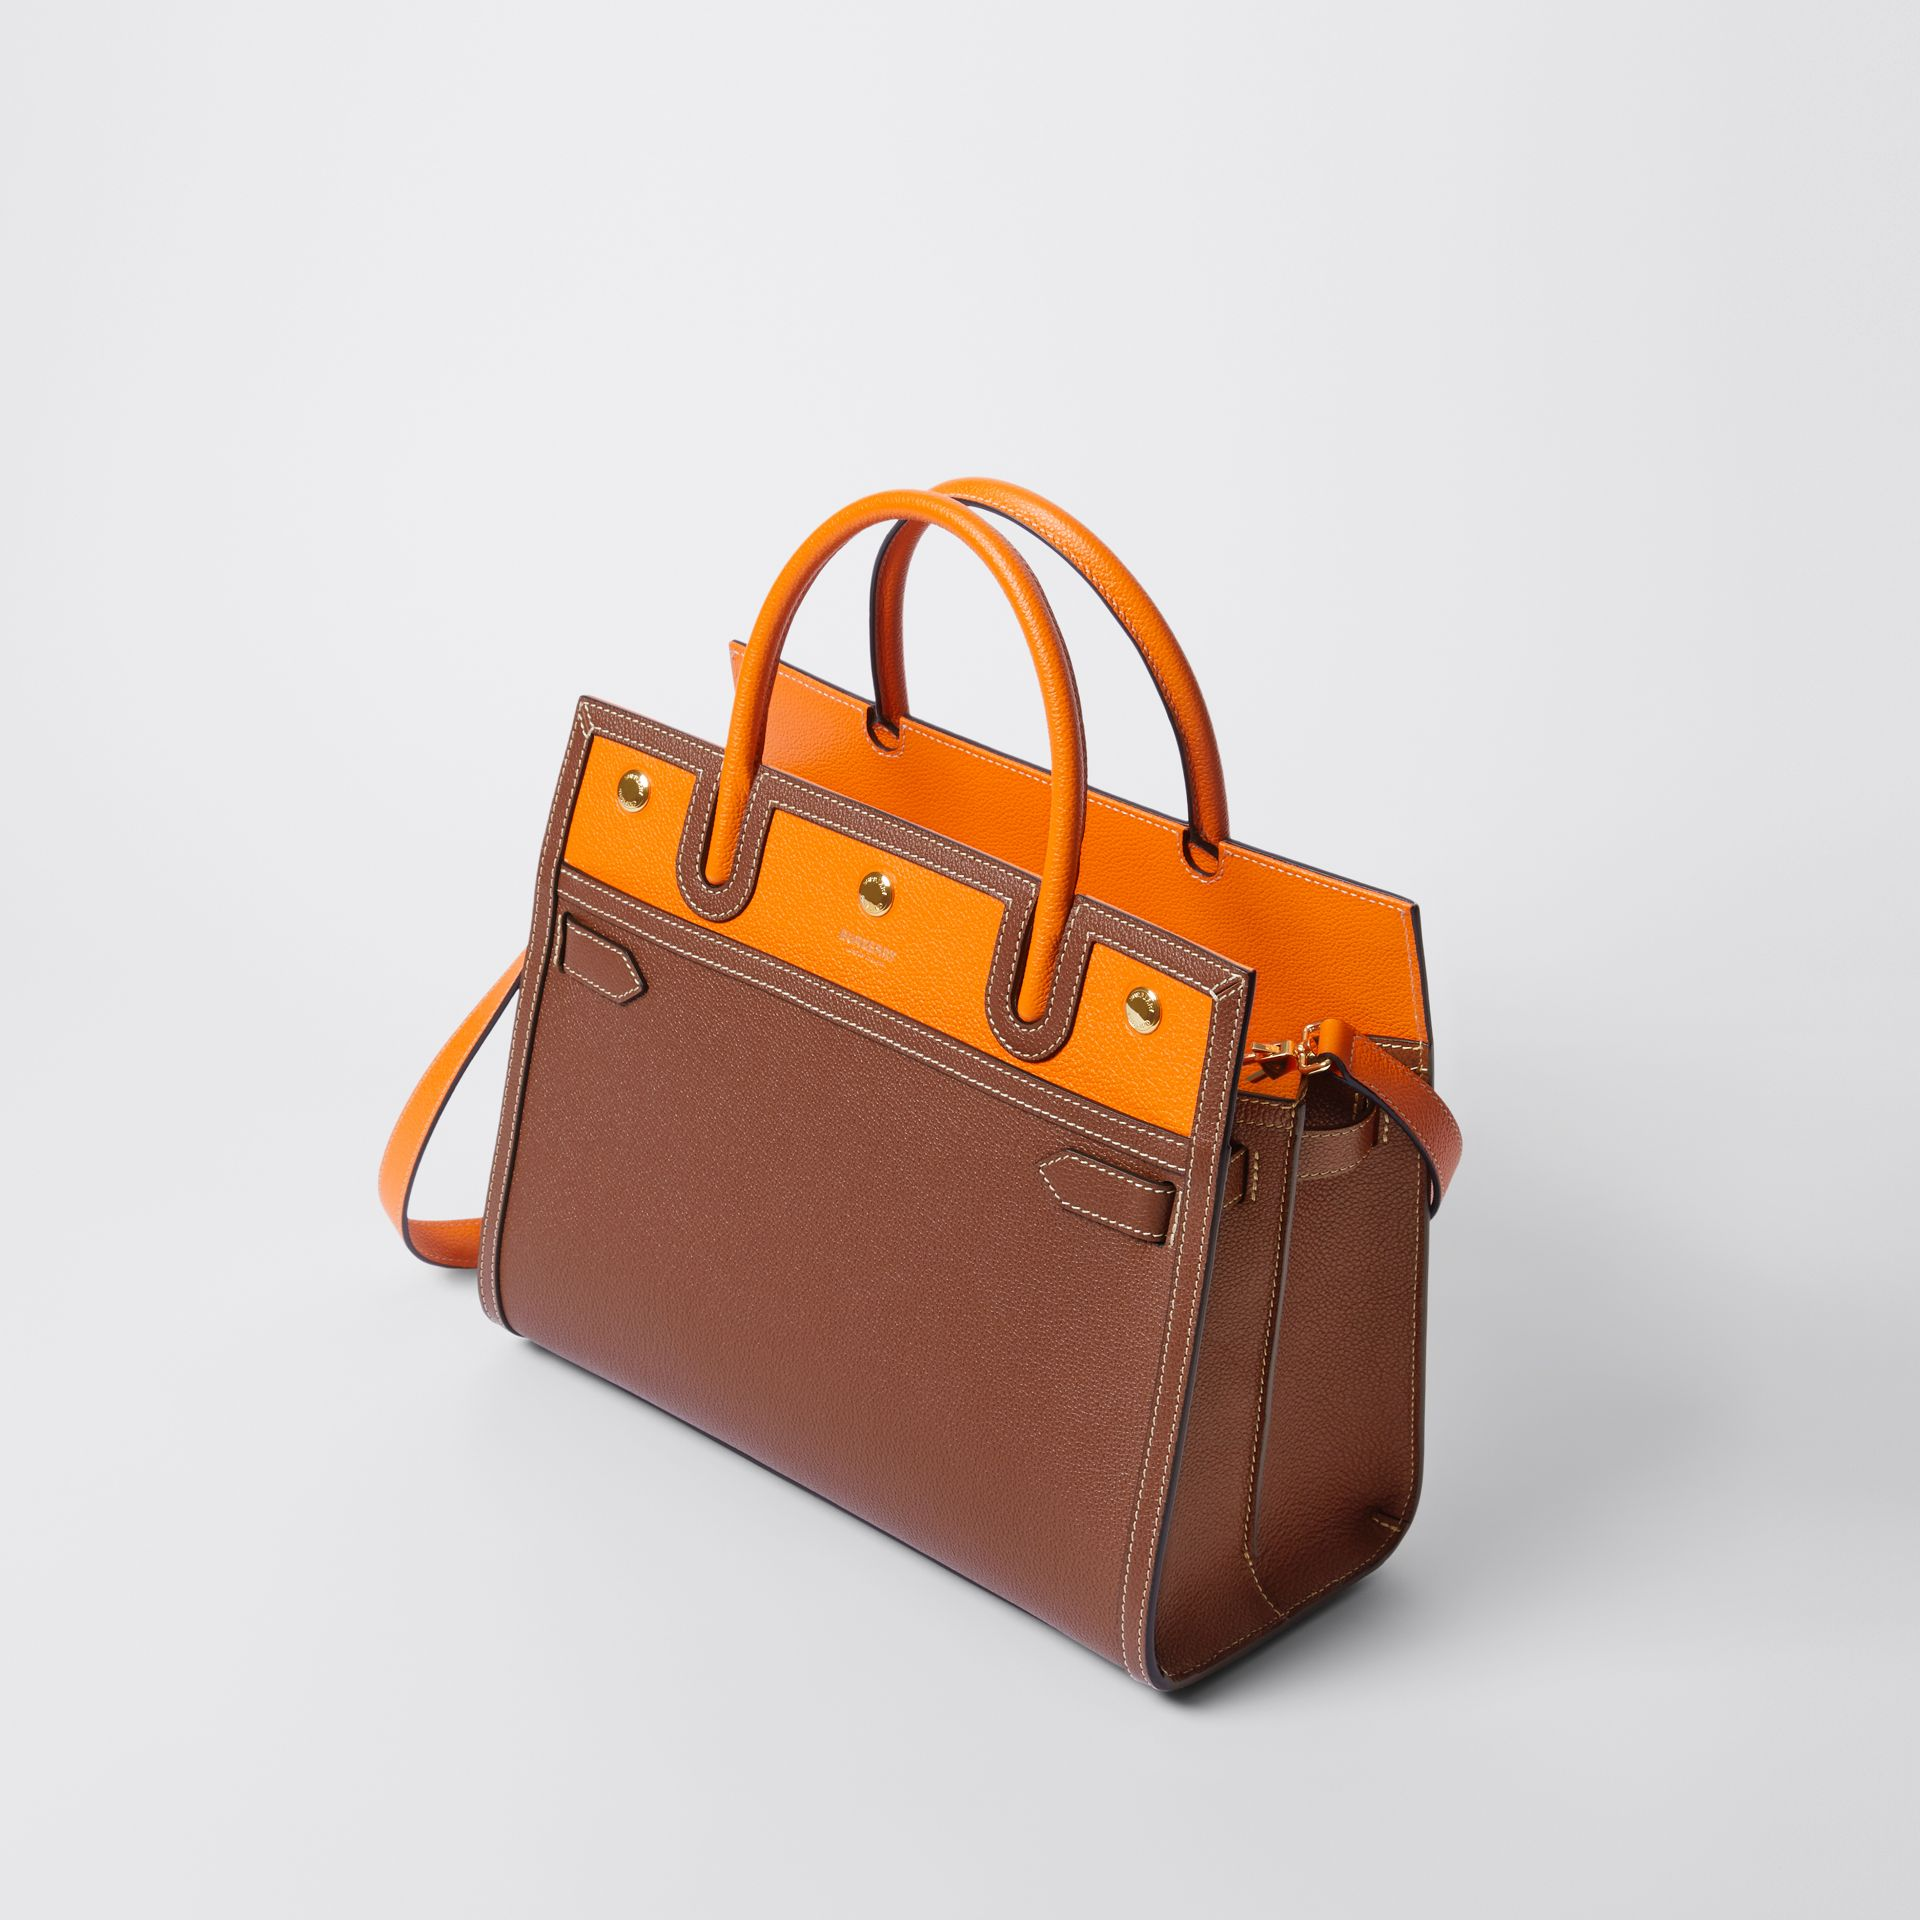 Small Leather Two-handle Title Bag in Tan/bright Orange - Women | Burberry - gallery image 3